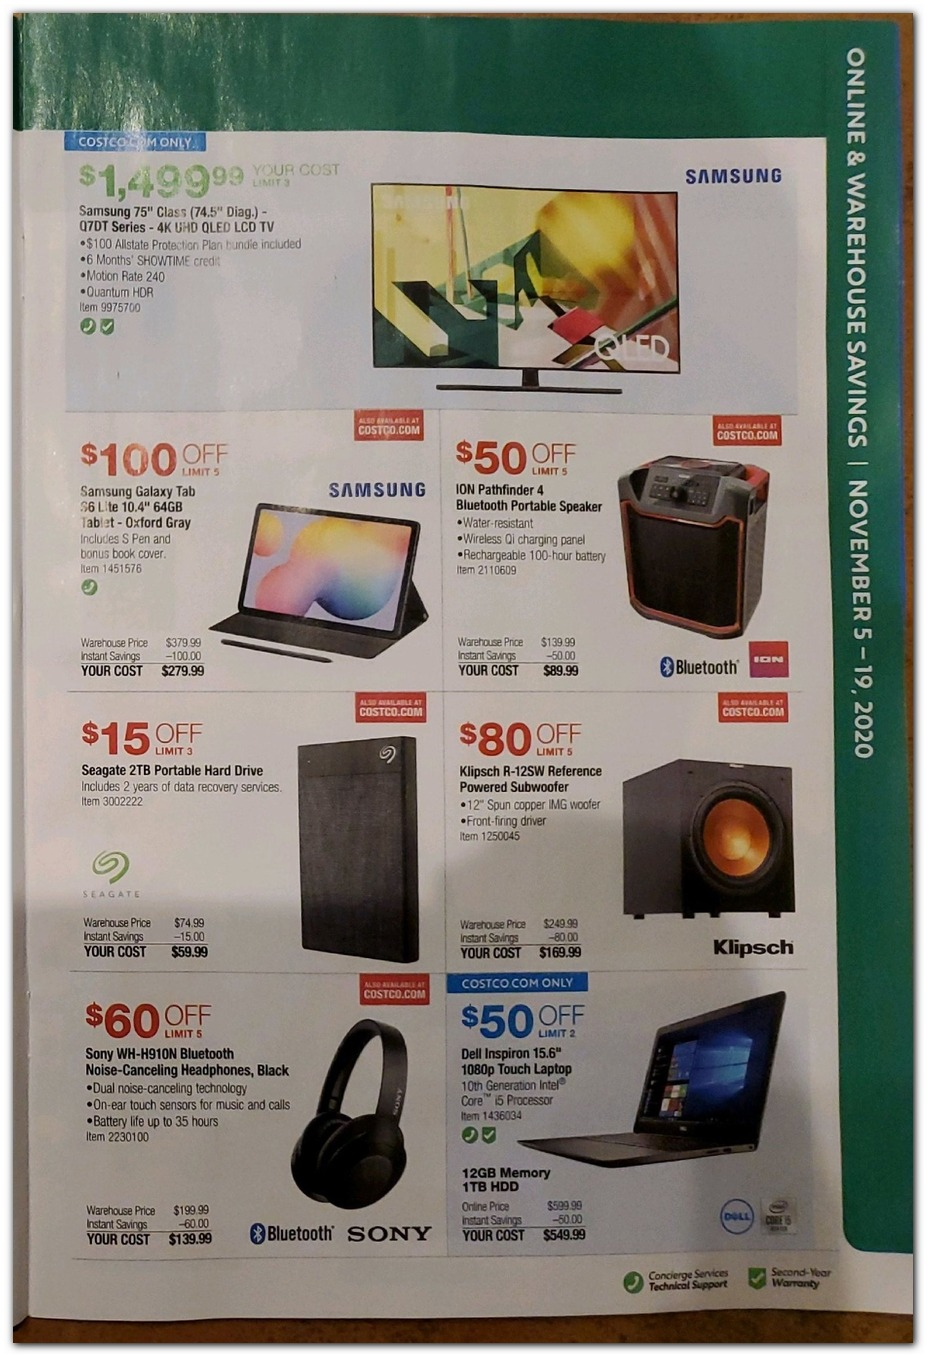 Nov 5 Sale - HDTV / Tablet / Speaker